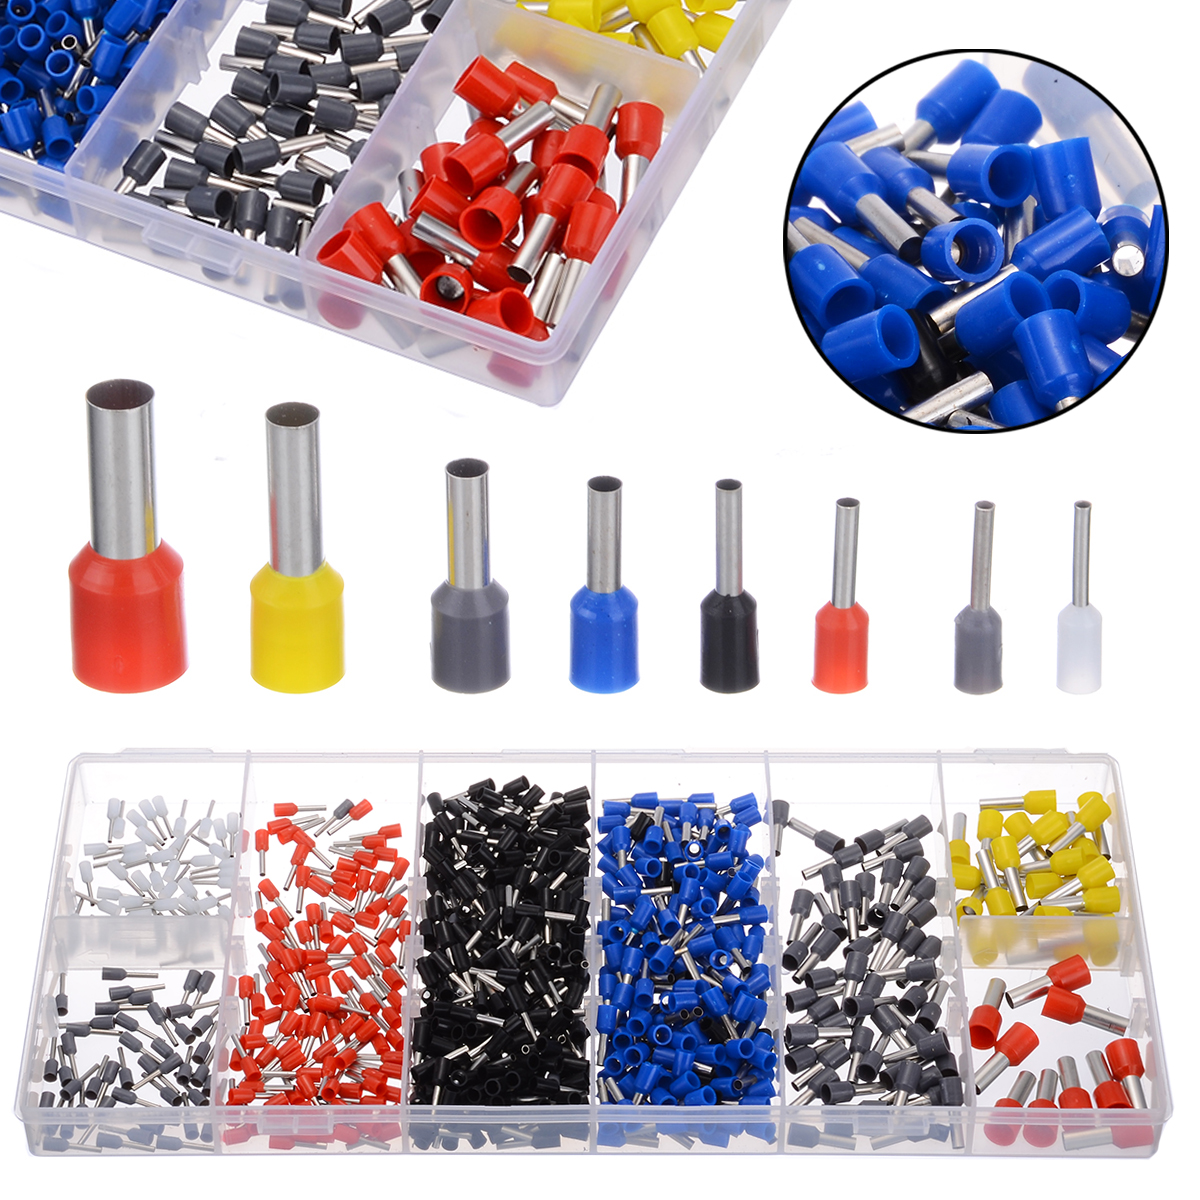 685pcs/box Insulated 0.5-10mm2 End Sleeve Cable Lugs Wire Ferrule Terminal Assortment Kits Connector Terminals